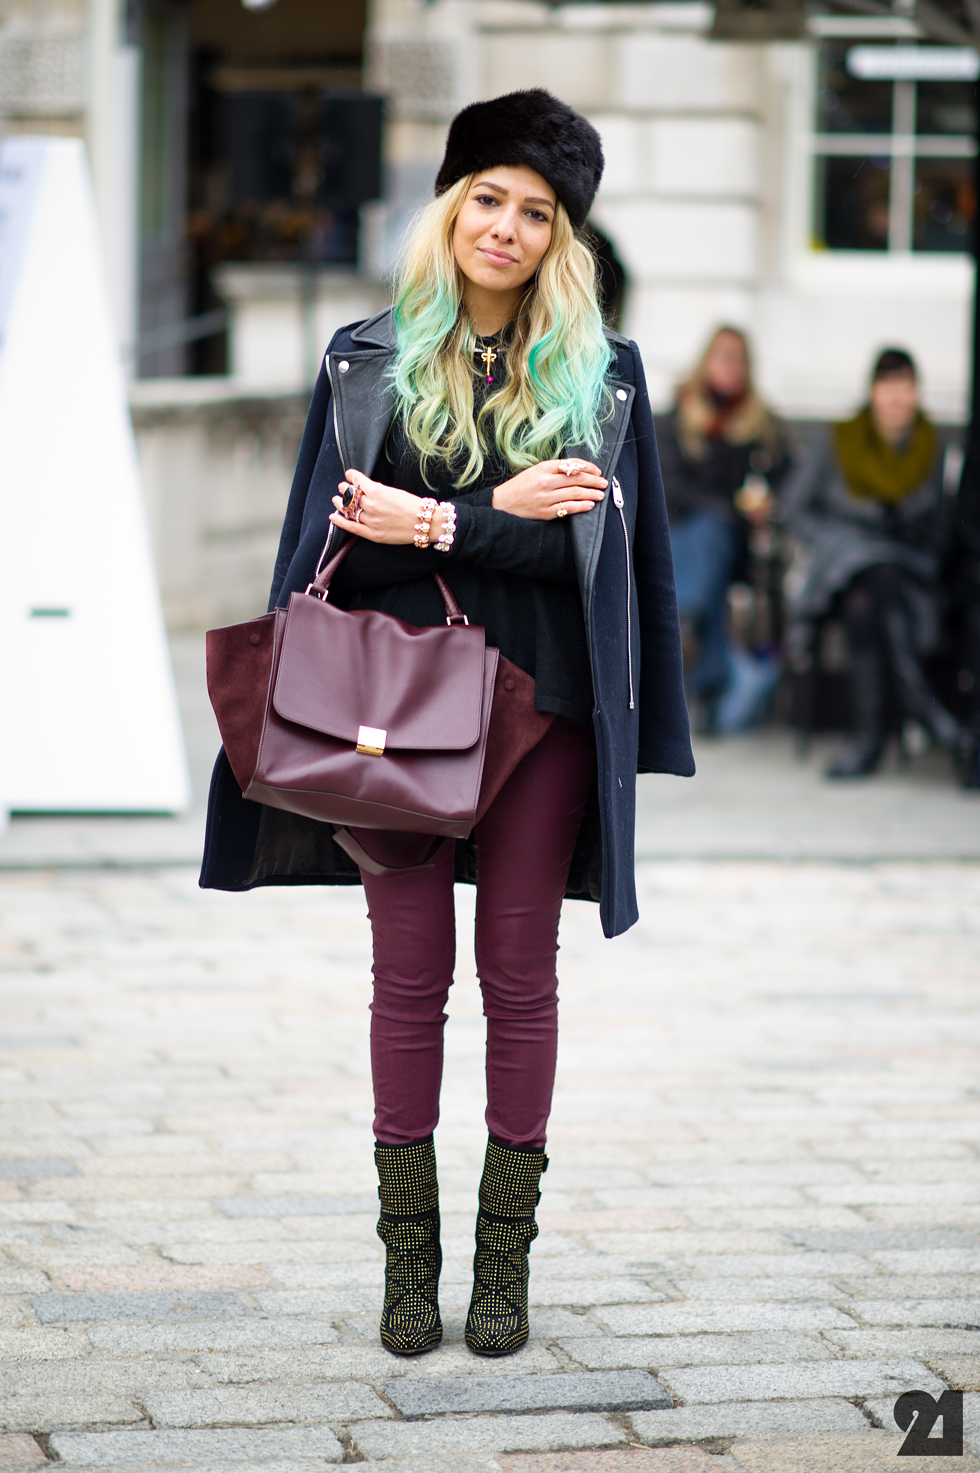 Fall Street Fashion 2013 For Girls: DYLANINTHECITY: Winter Fashion! How Do You Wear It